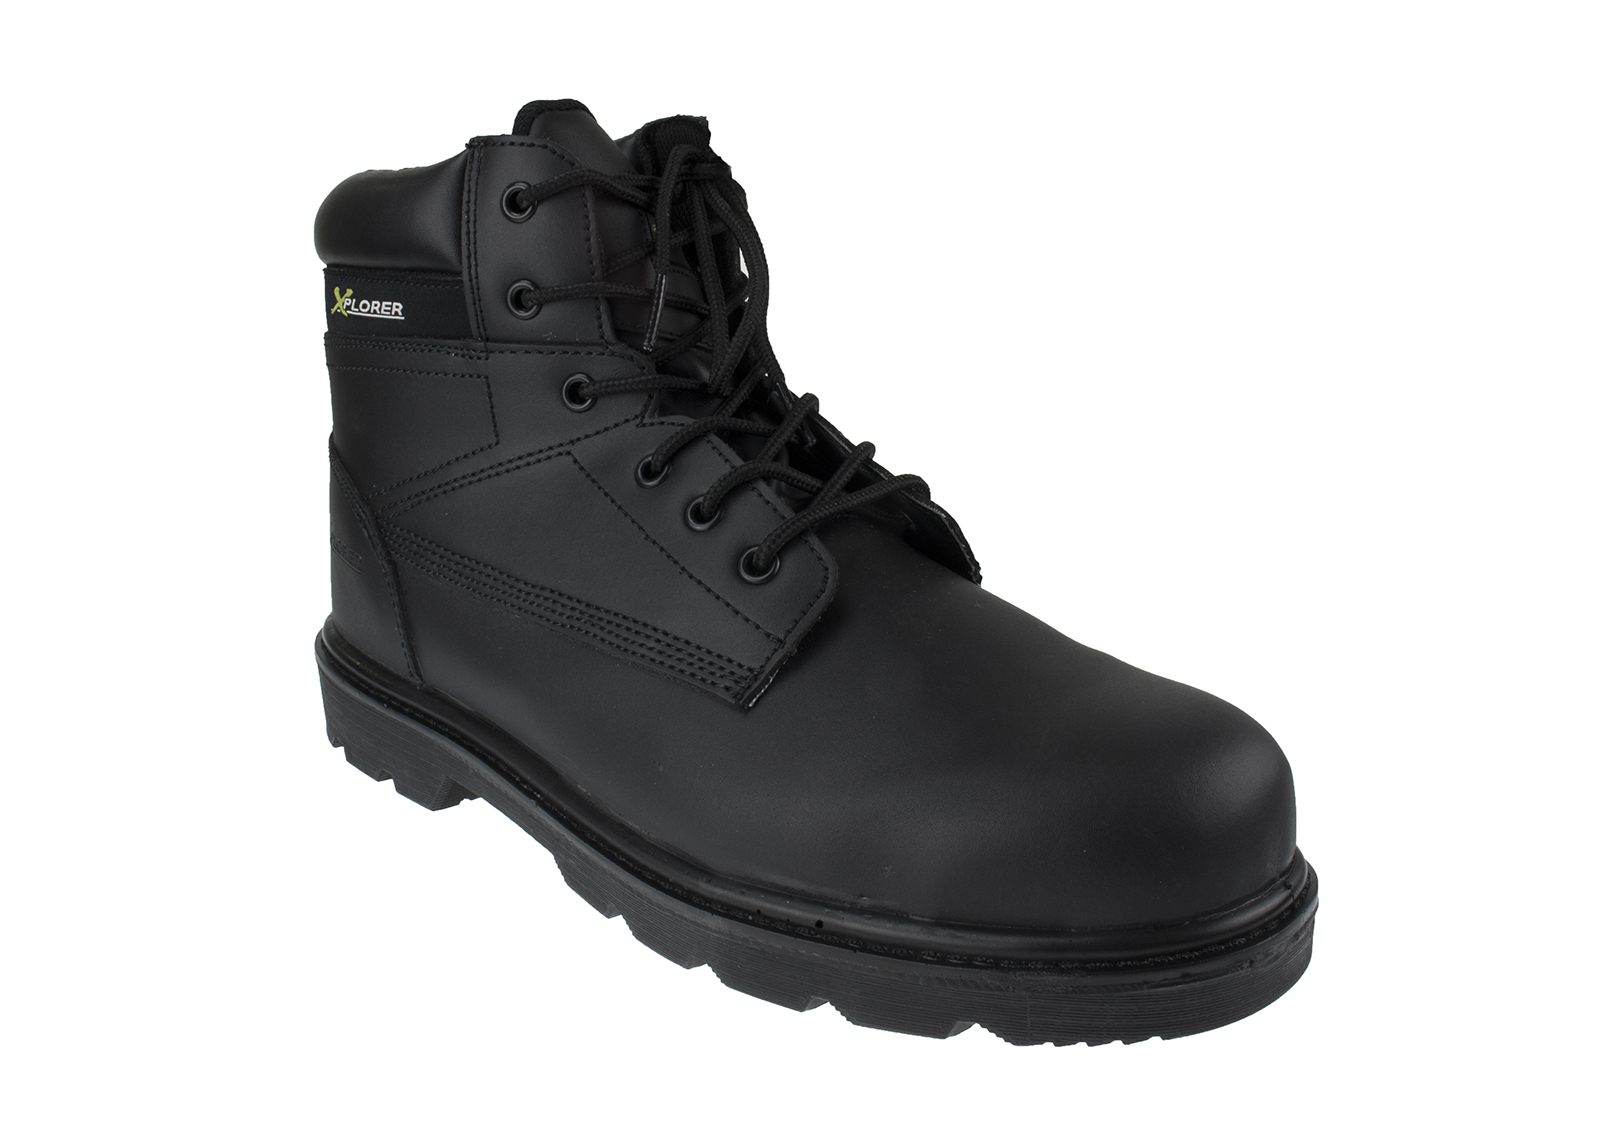 Xplorer Leather Safety Boot w/ Padded ankle support and protection - side